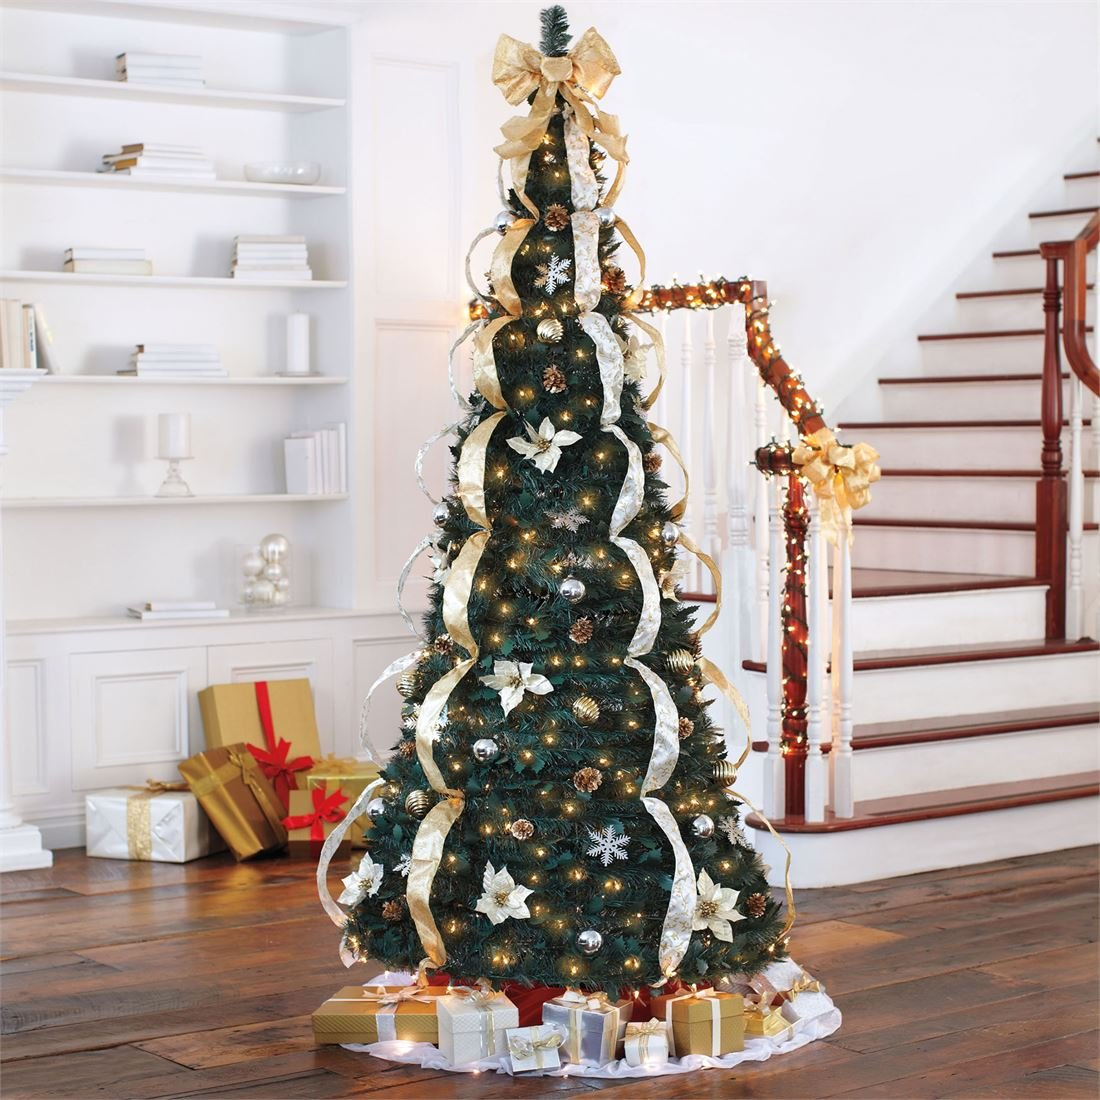 amazoncom brylanehome 712 deluxe pop up christmas tree silver gold0 home kitchen - Pre Decorated Pop Up Christmas Trees